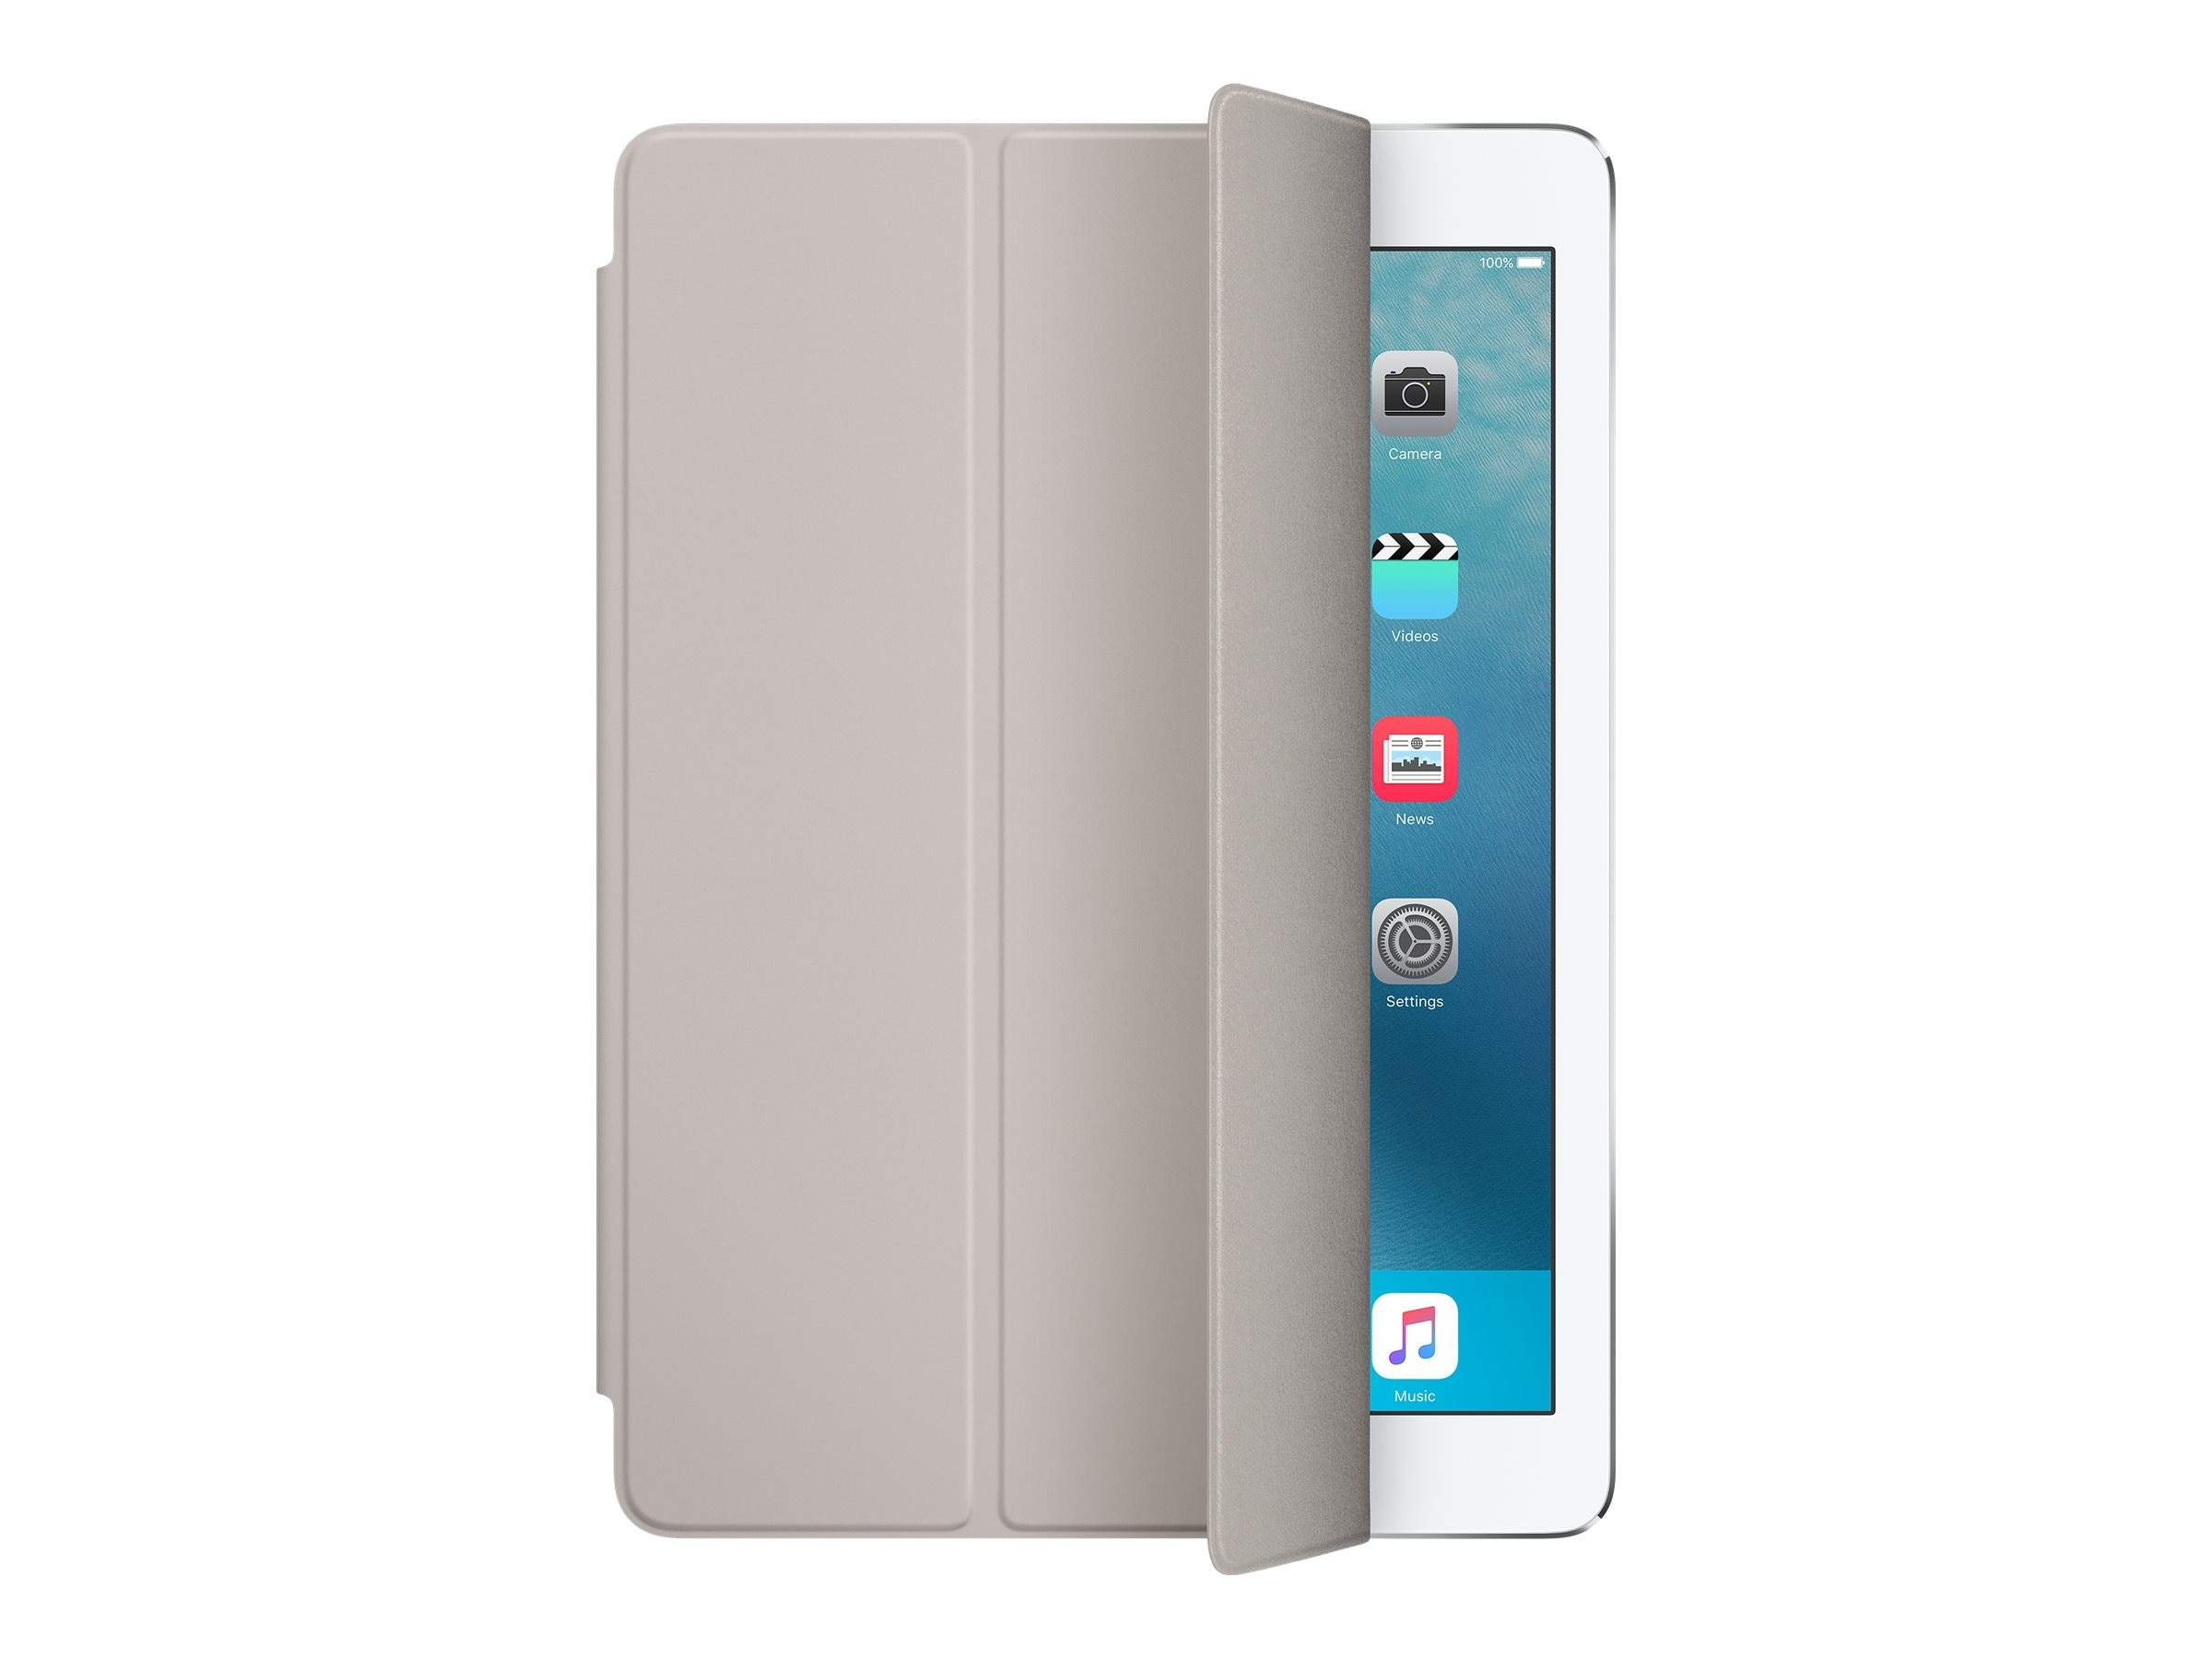 Apple Smart Cover for iPad Pro 9.7, Stone, MM2E2AM/A, 31812108, Carrying Cases - Tablets & eReaders